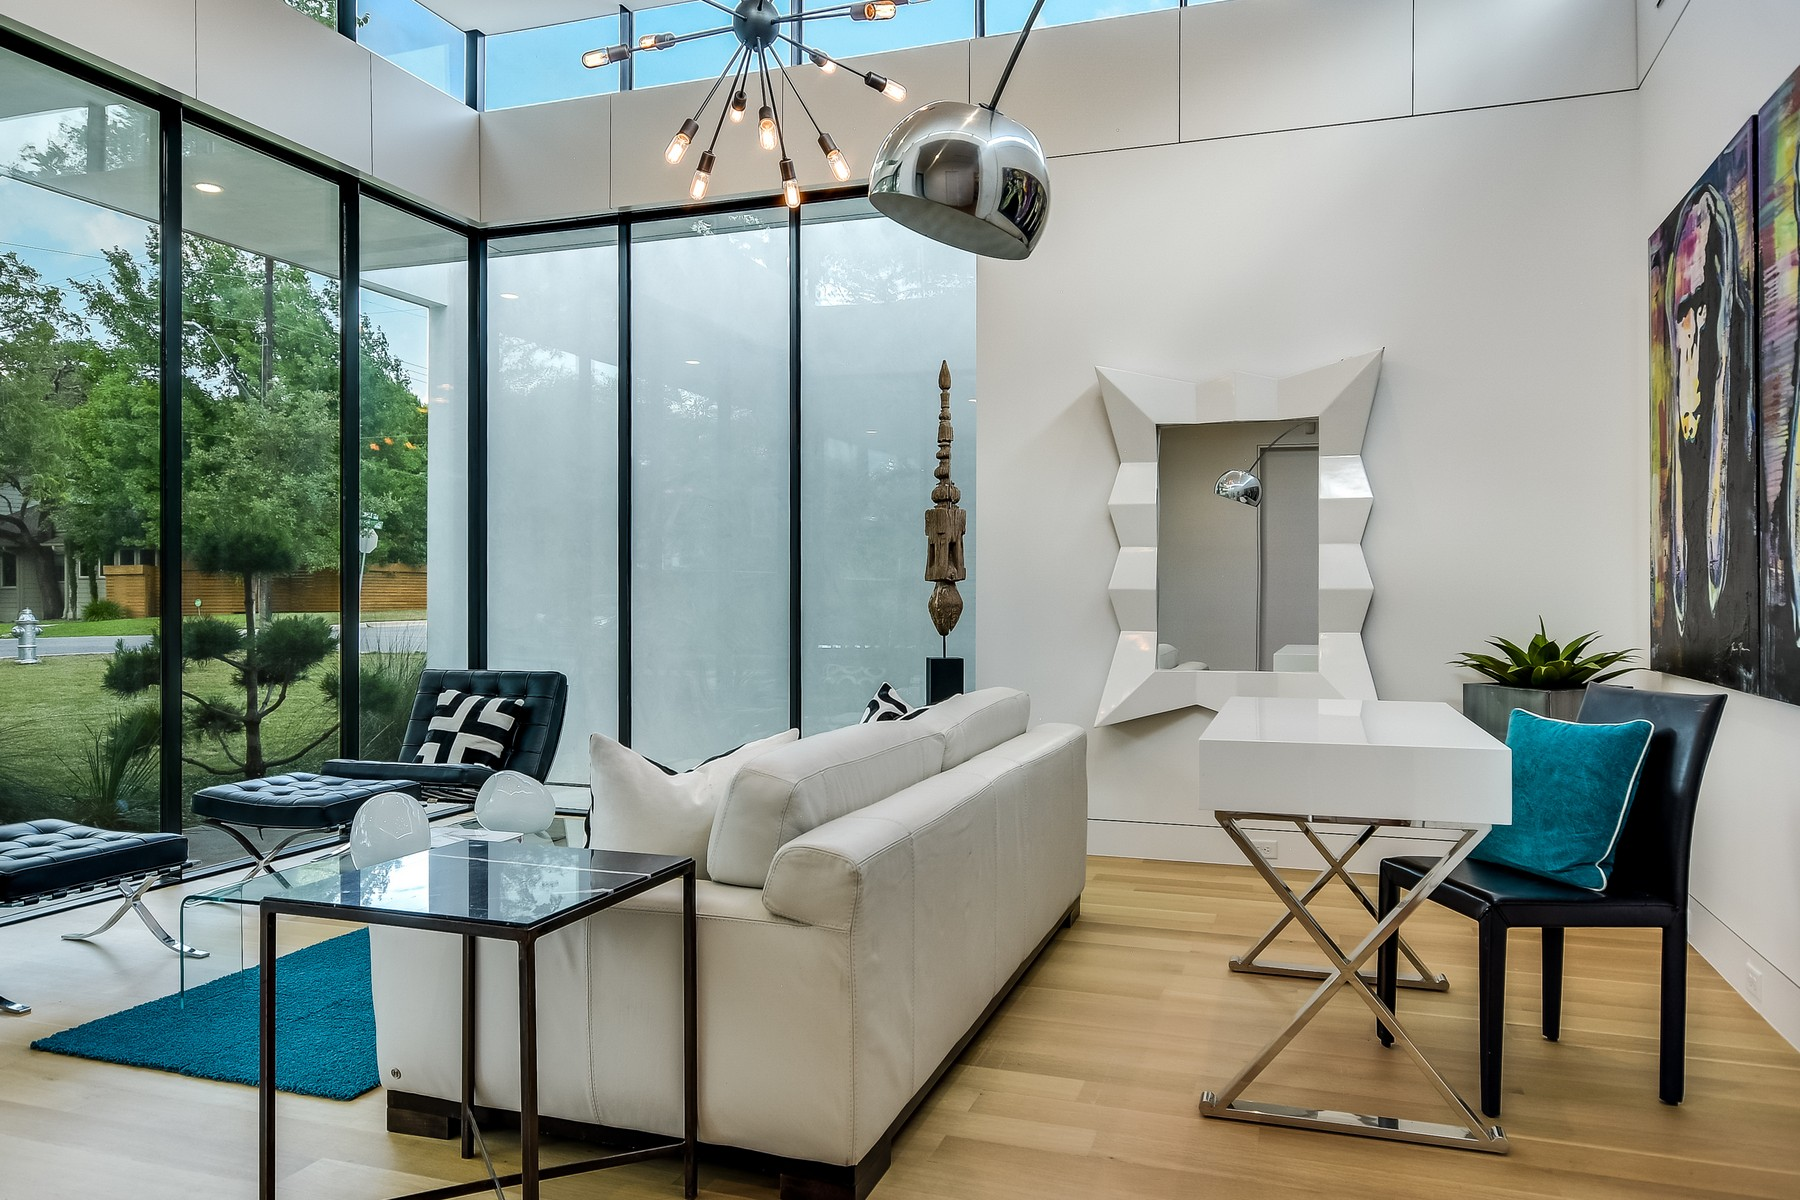 Additional photo for property listing at Modern Masterpiece in Tarrytown 3601 Bridle Path Austin, Texas 78703 United States